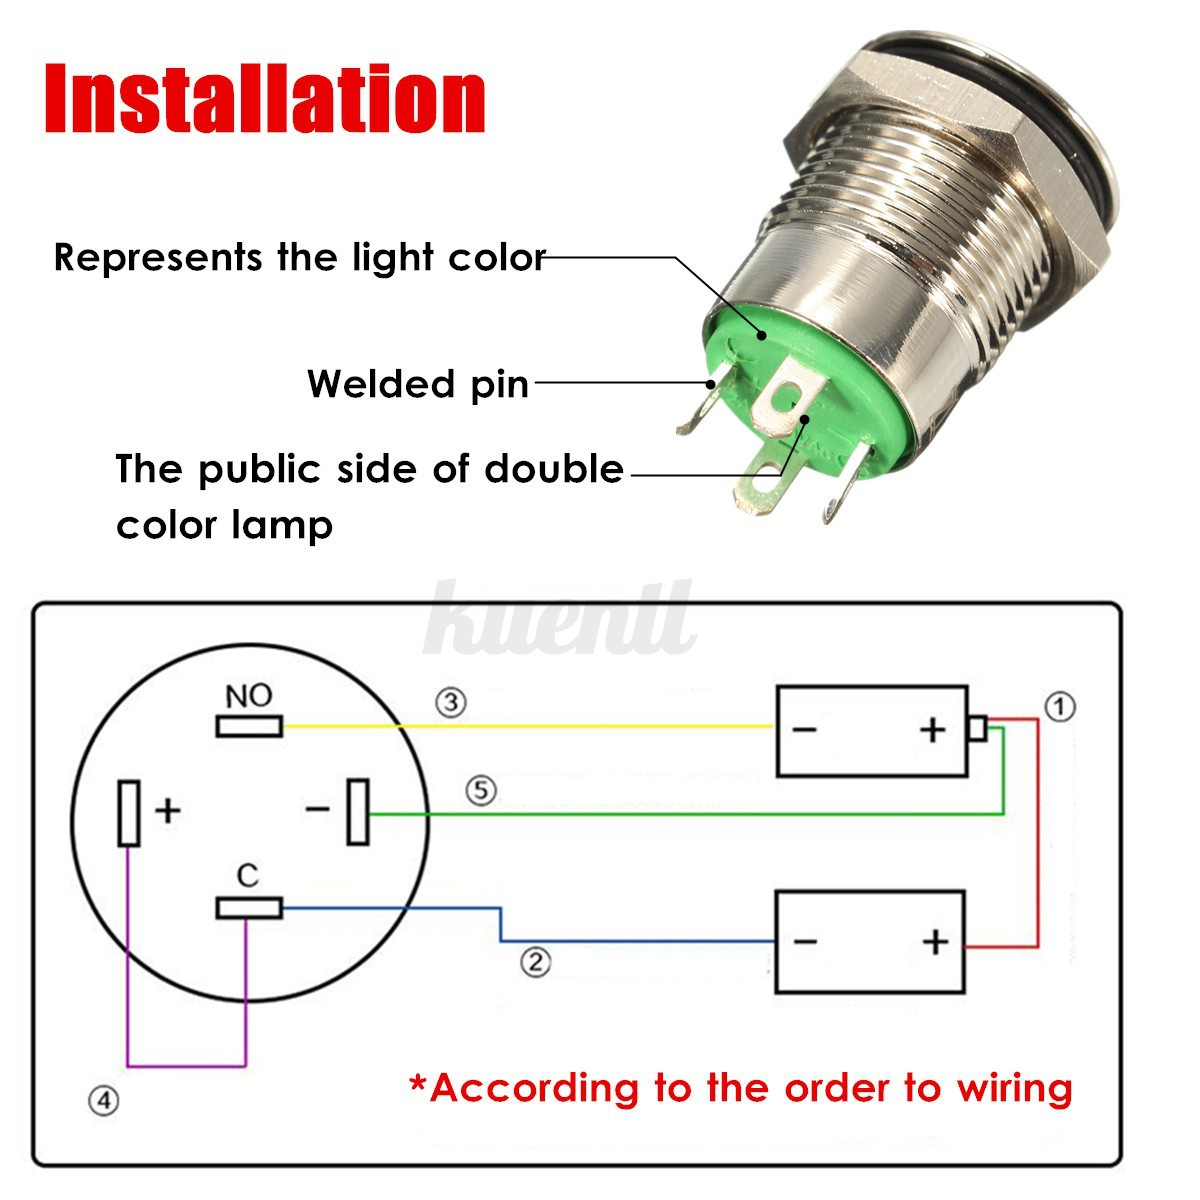 3 way momentary switch wiring diagram lighted momentary switch wiring diagram 9.5mm 12v led power momentary push button switch for car ...